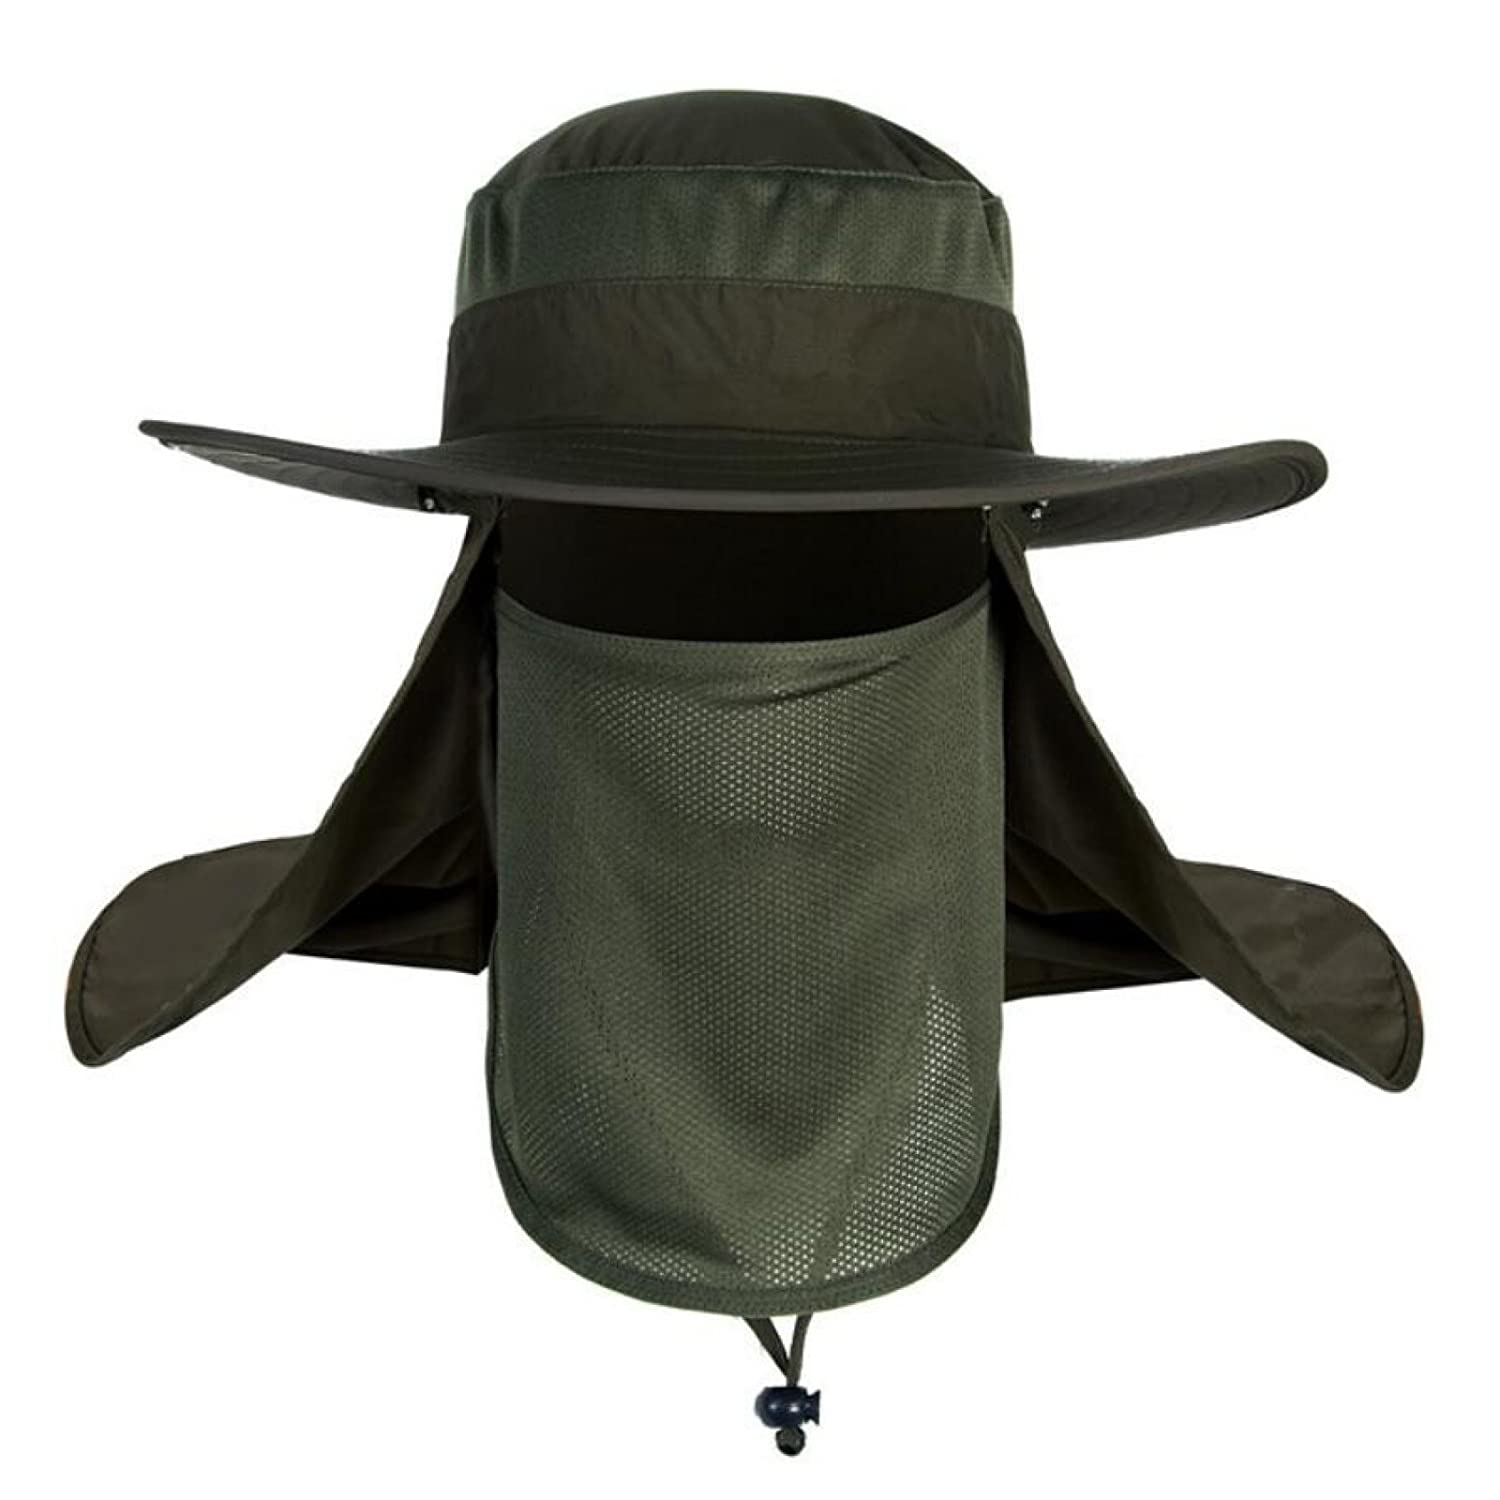 b48886a3a5bce LIGHTWEIGHT   QUICK TO DRY  This 360° protection Outdoor Sun Flap Hats Sun  Caps Lightweight